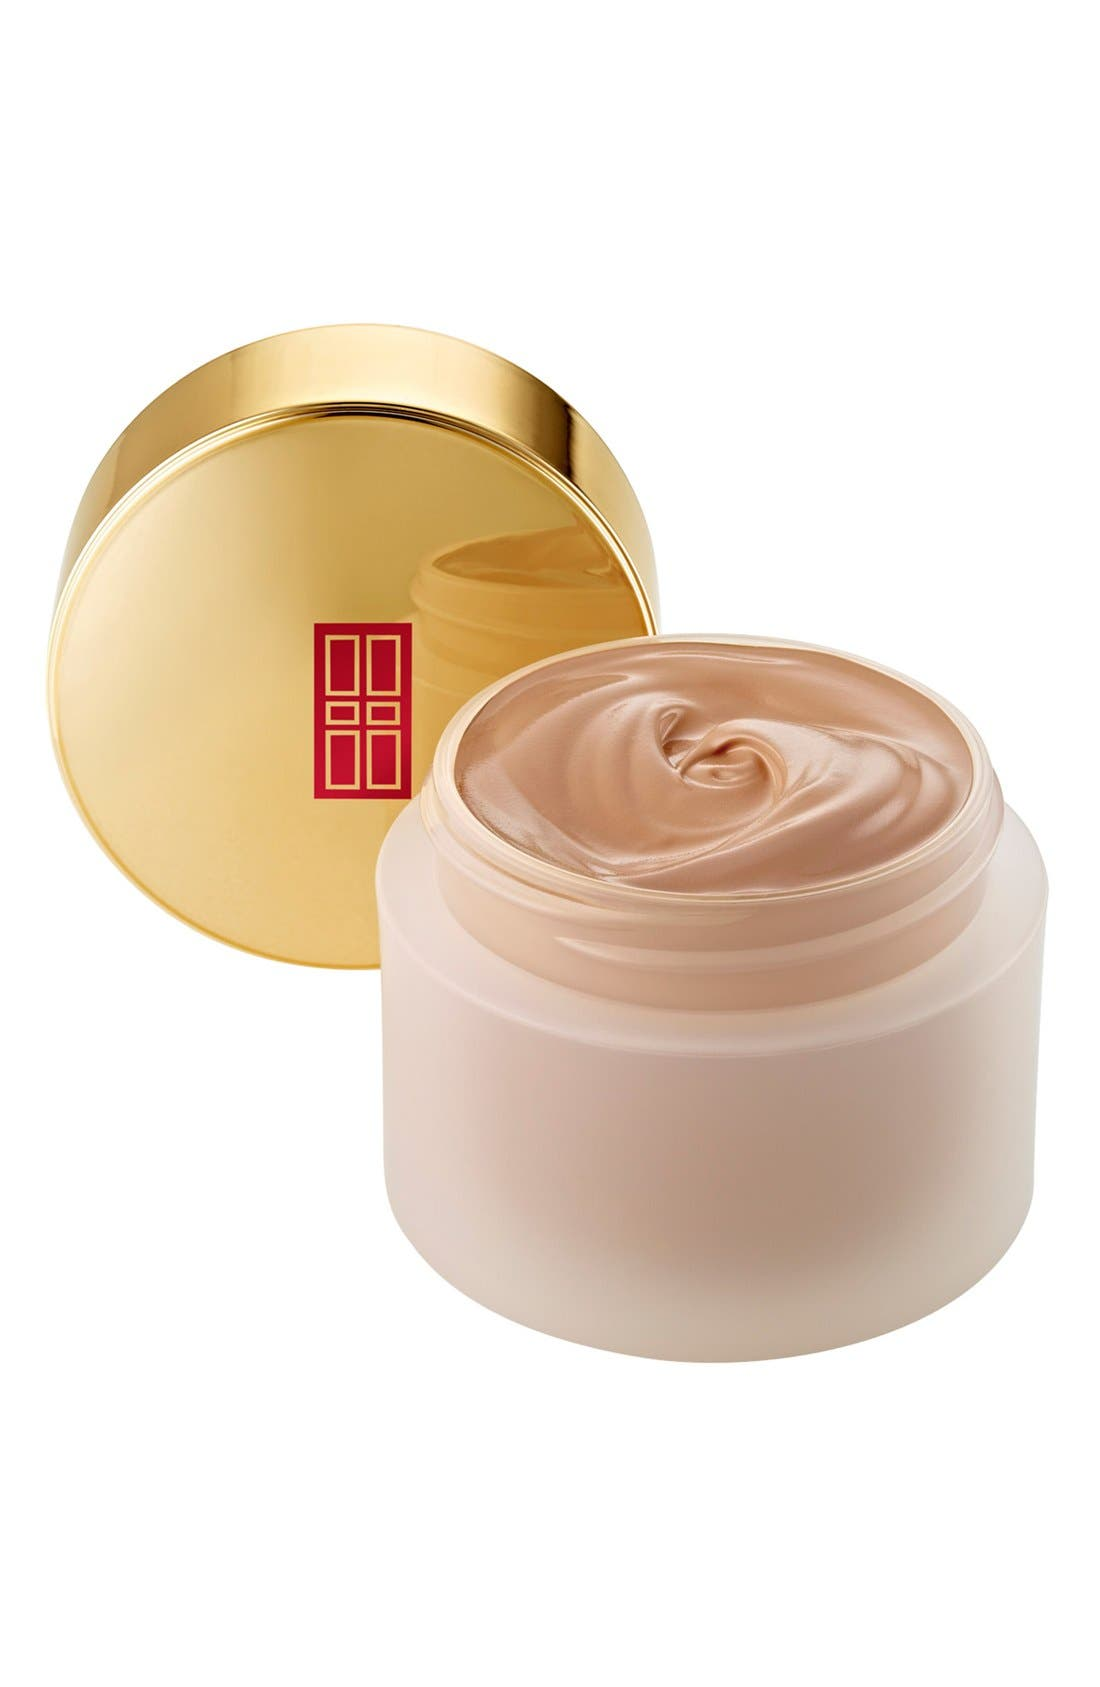 Elizabeth Arden Ceramide Lift & Firm Makeup Broad Spectrum SPF 15